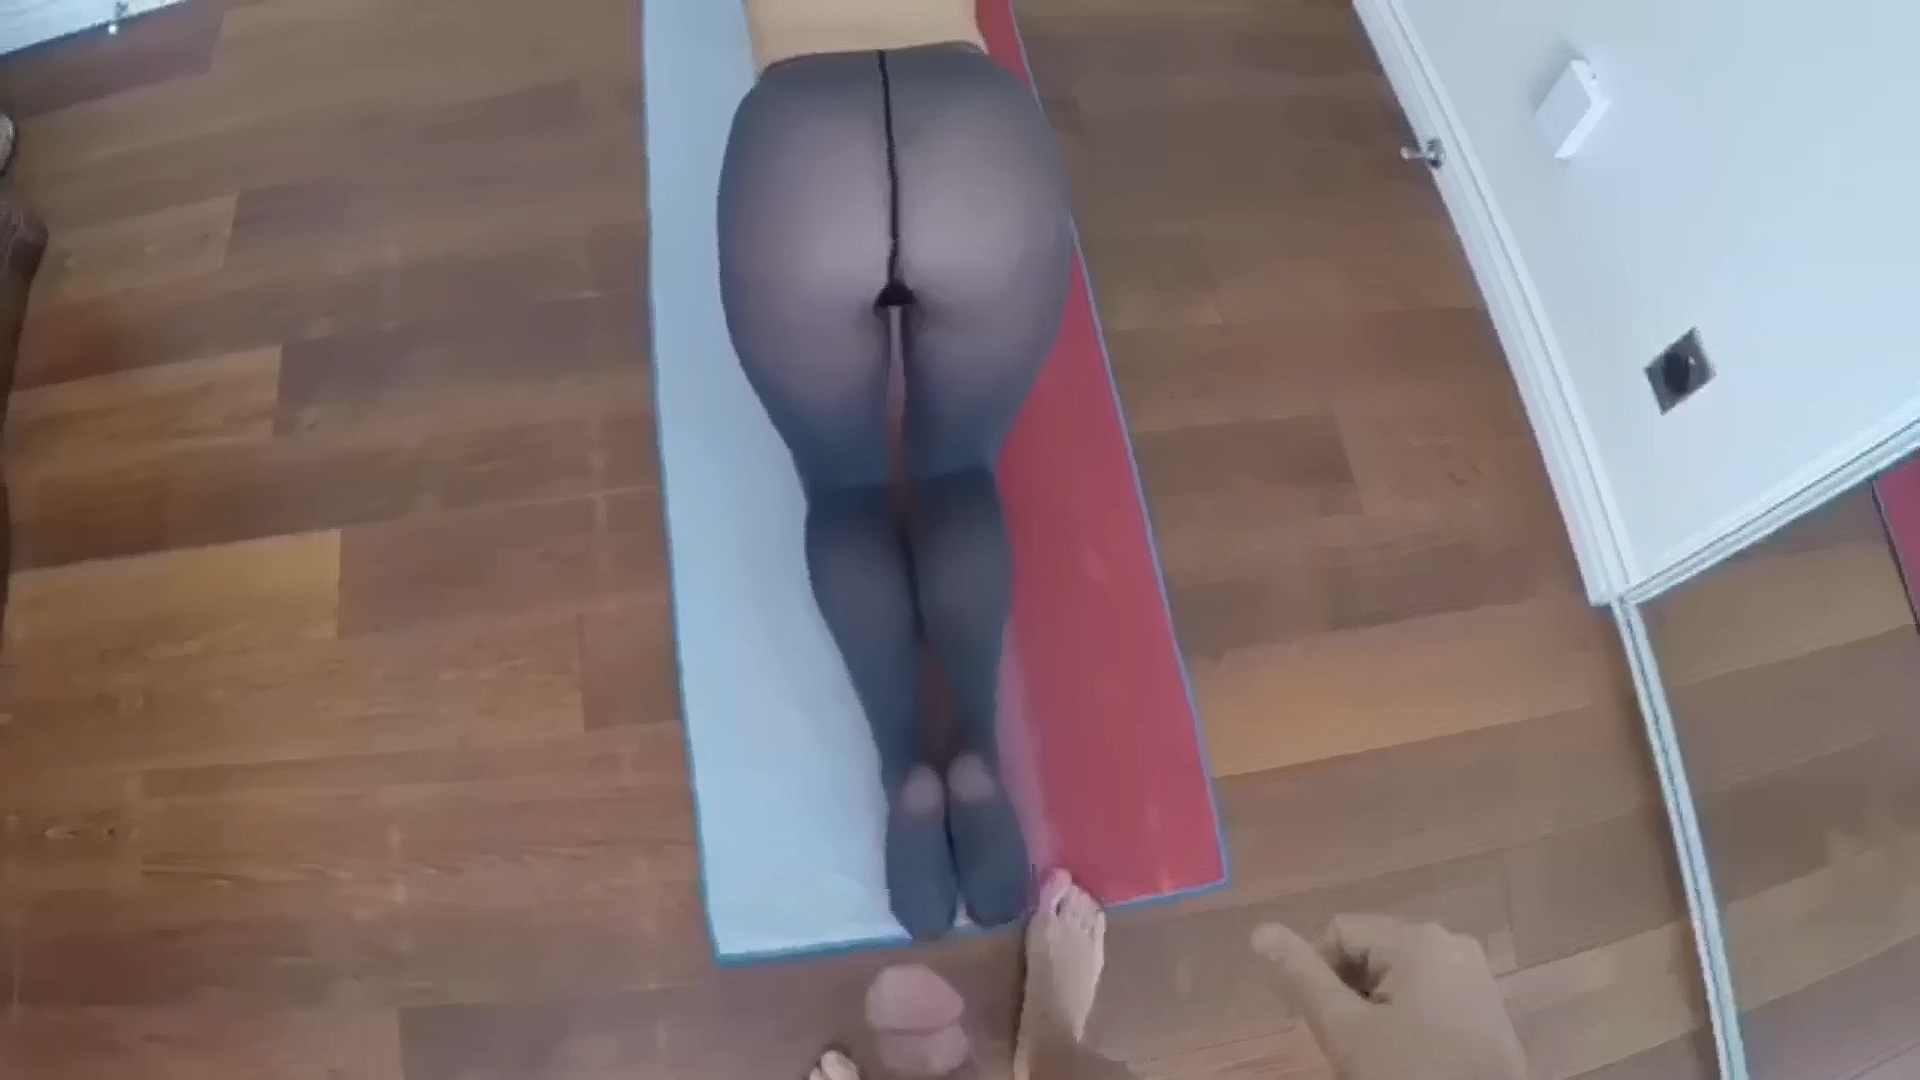 CumLoad_On_SexyAss_in_Torn_Pantyhose_1080p.mp4_20200227_190124.928.jpg